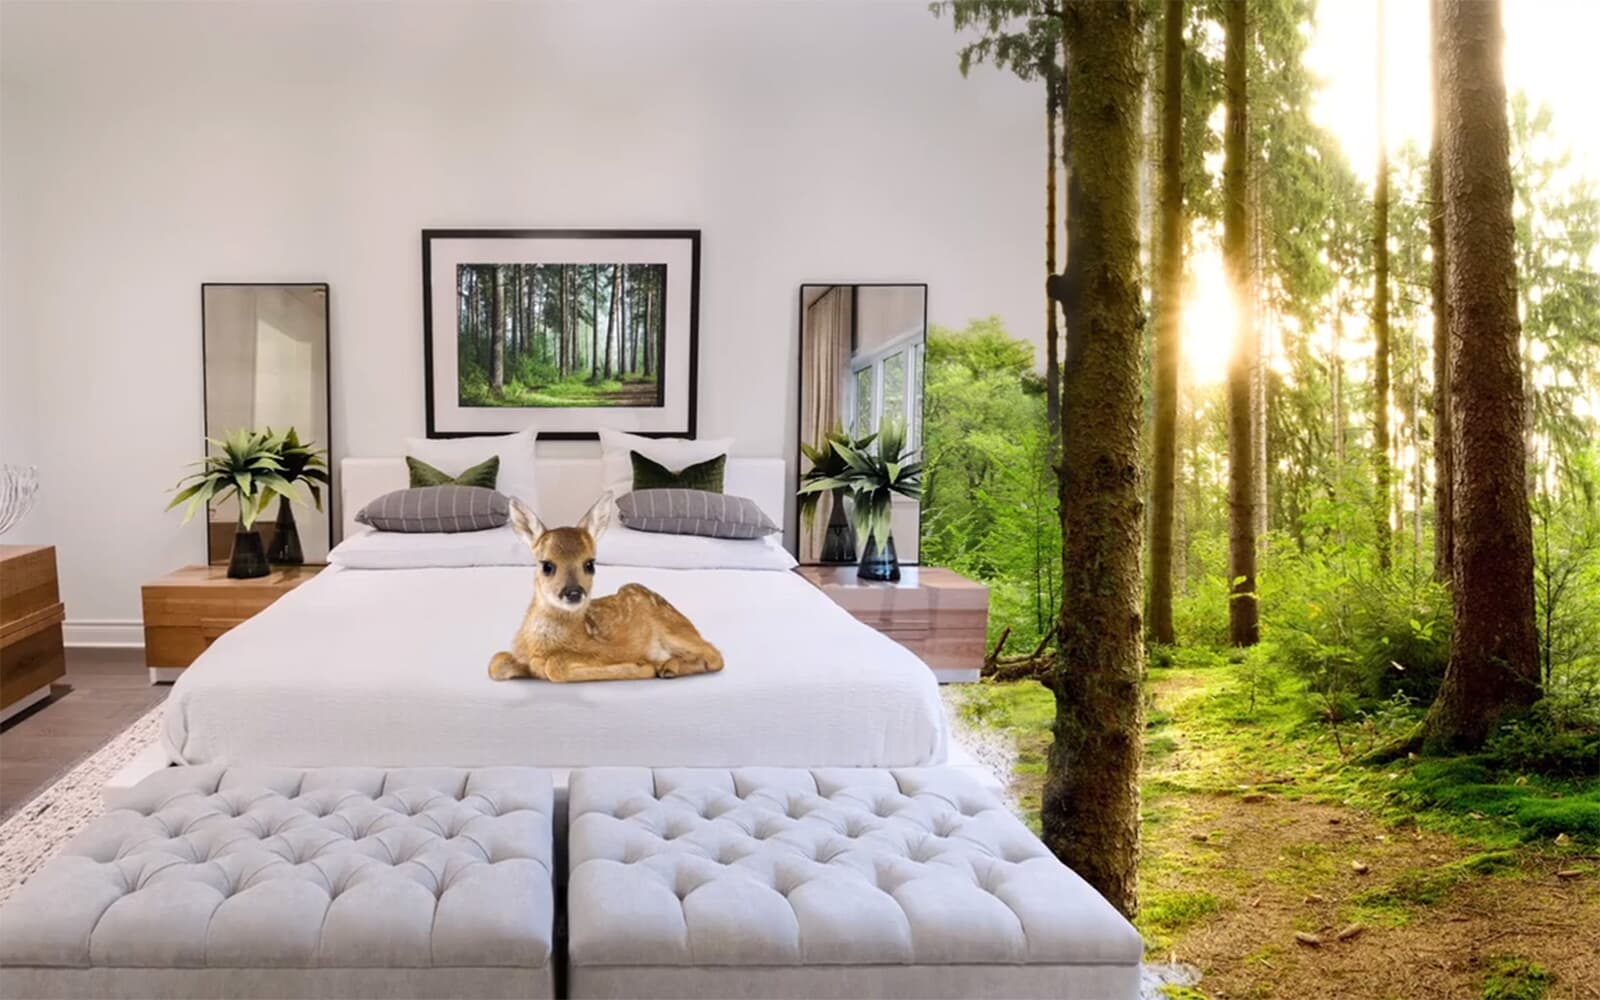 Bedroom Blending Into Forest With Deer on Bed | Pinehurst in Paris, ON | Brookfield Residential